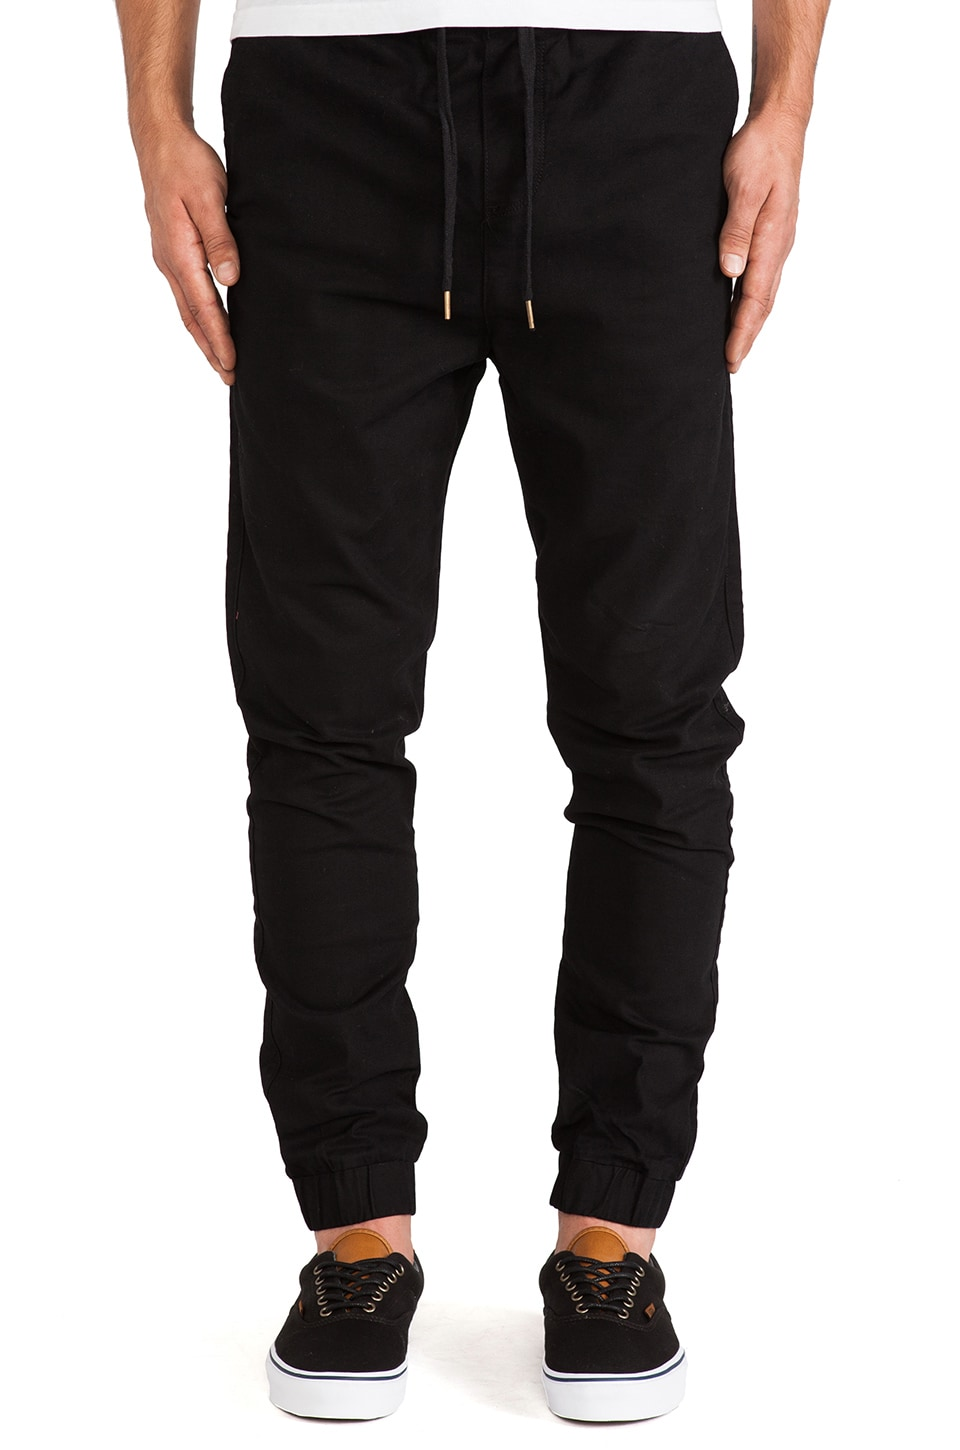 Ezekiel Def Tone Pant in Black